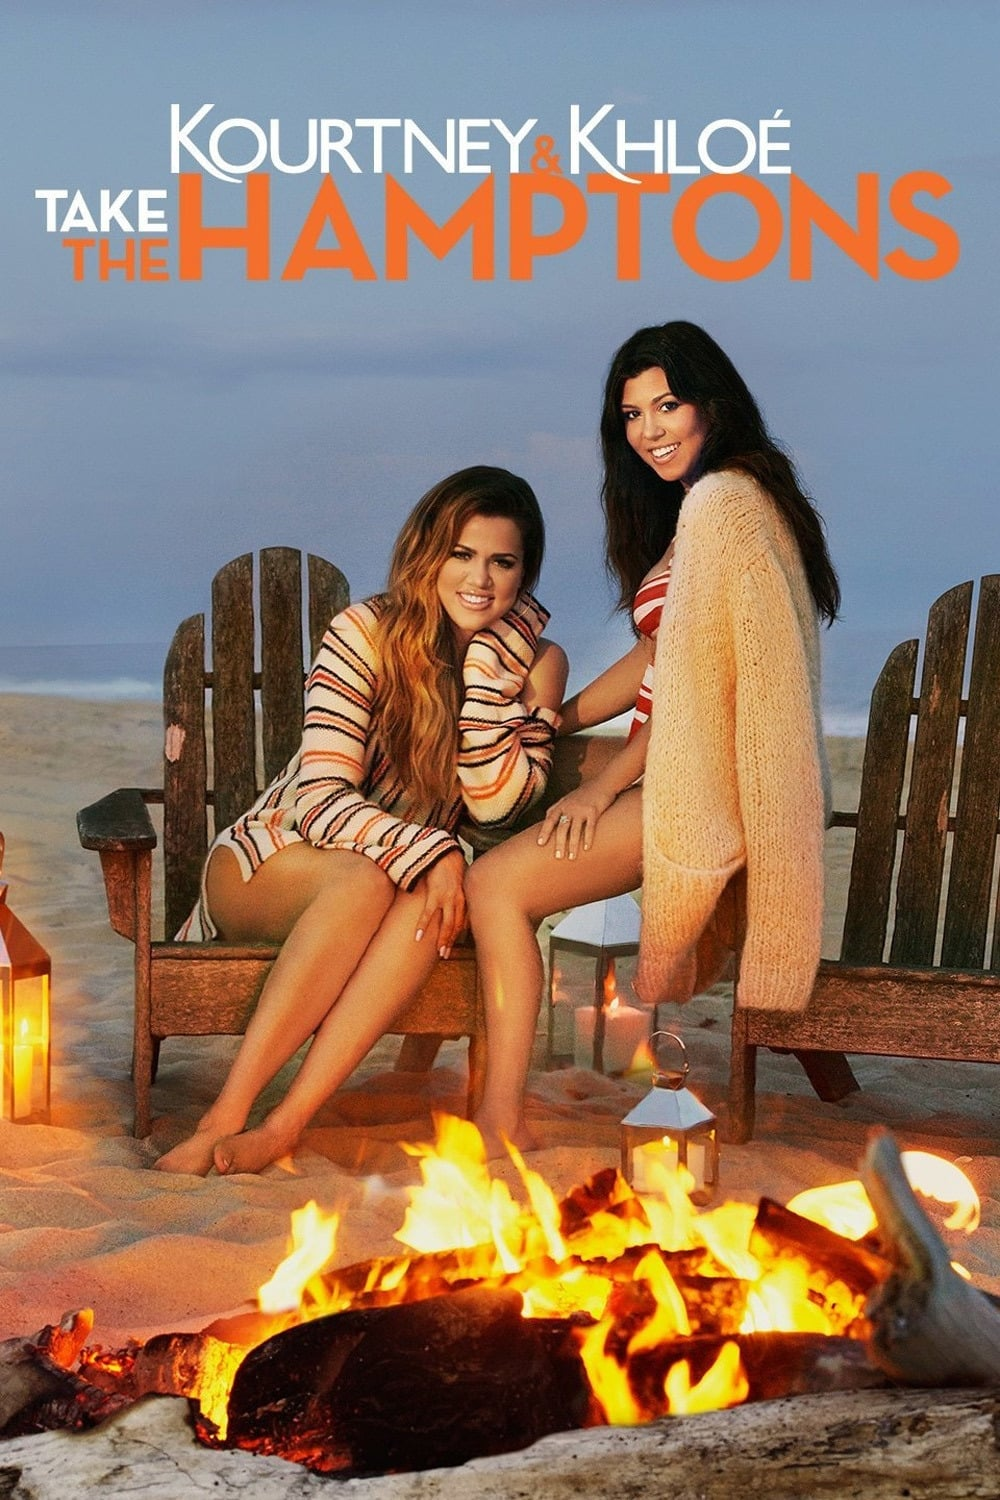 Kourtney & Khloé Take the Hamptons (2014)